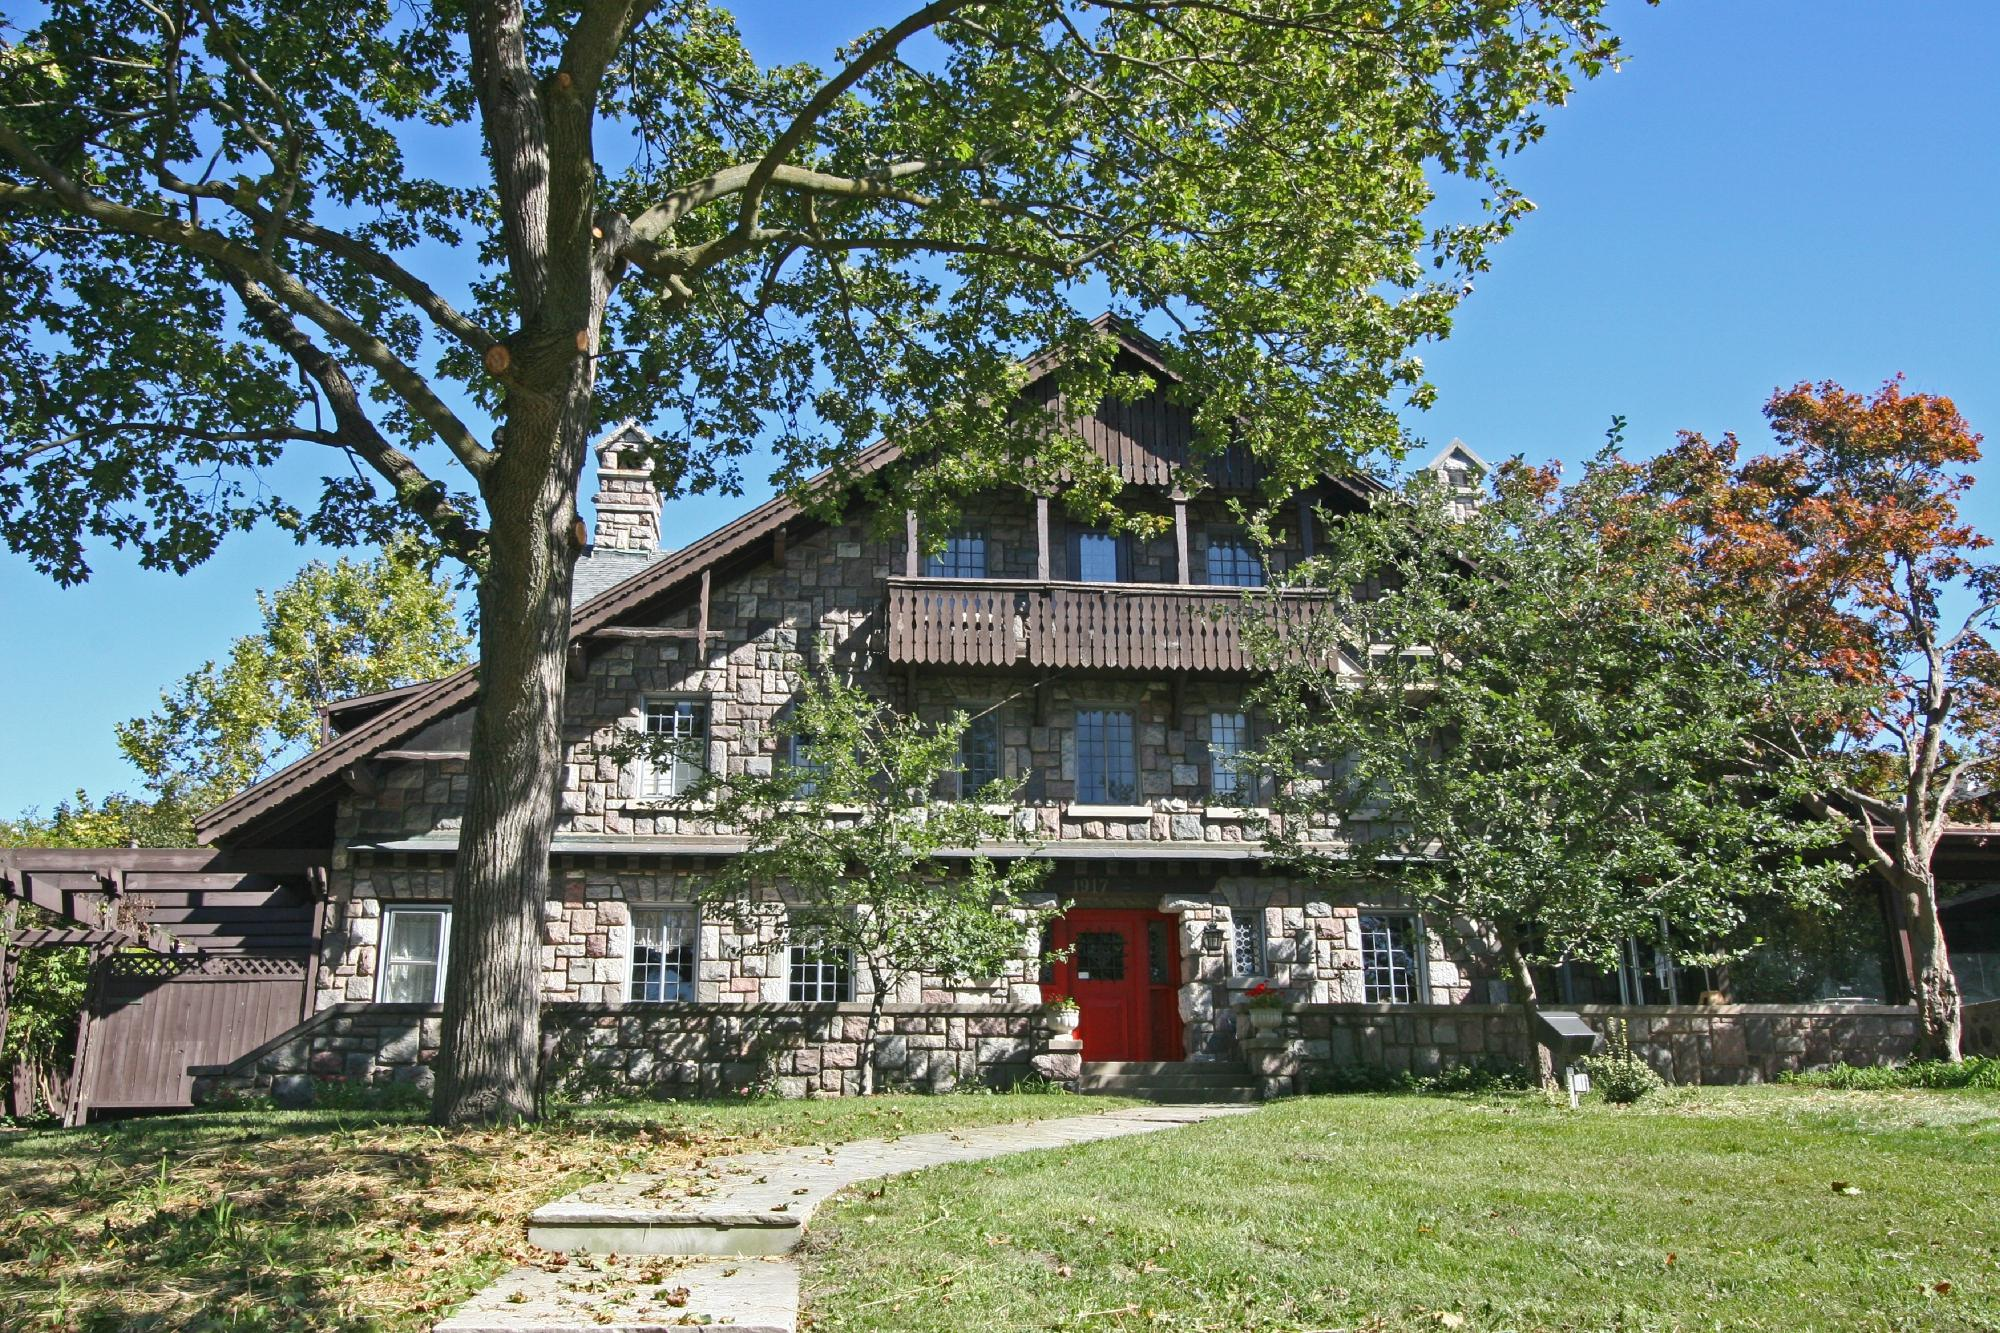 Stone Chalet Bed & Breakfast Inn